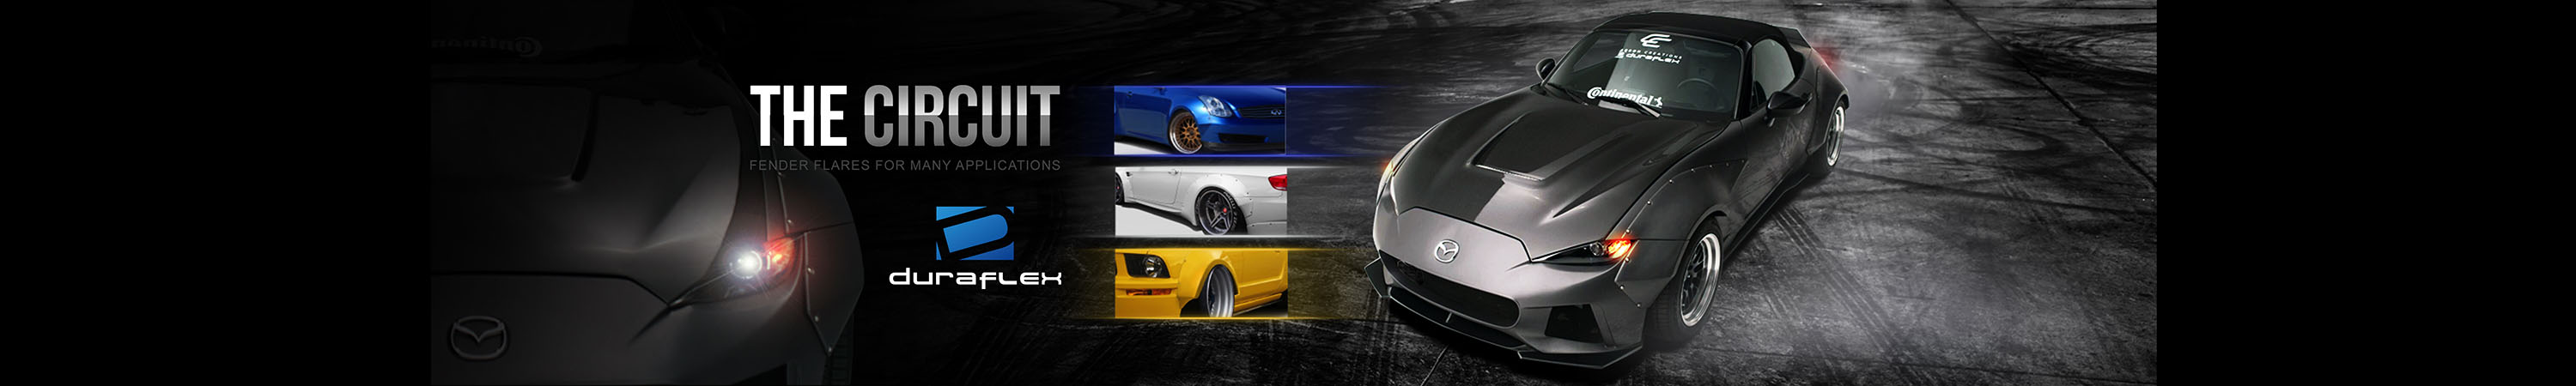 Body Kits - Aftermarket aero dynamic kits for cars,truck and suv